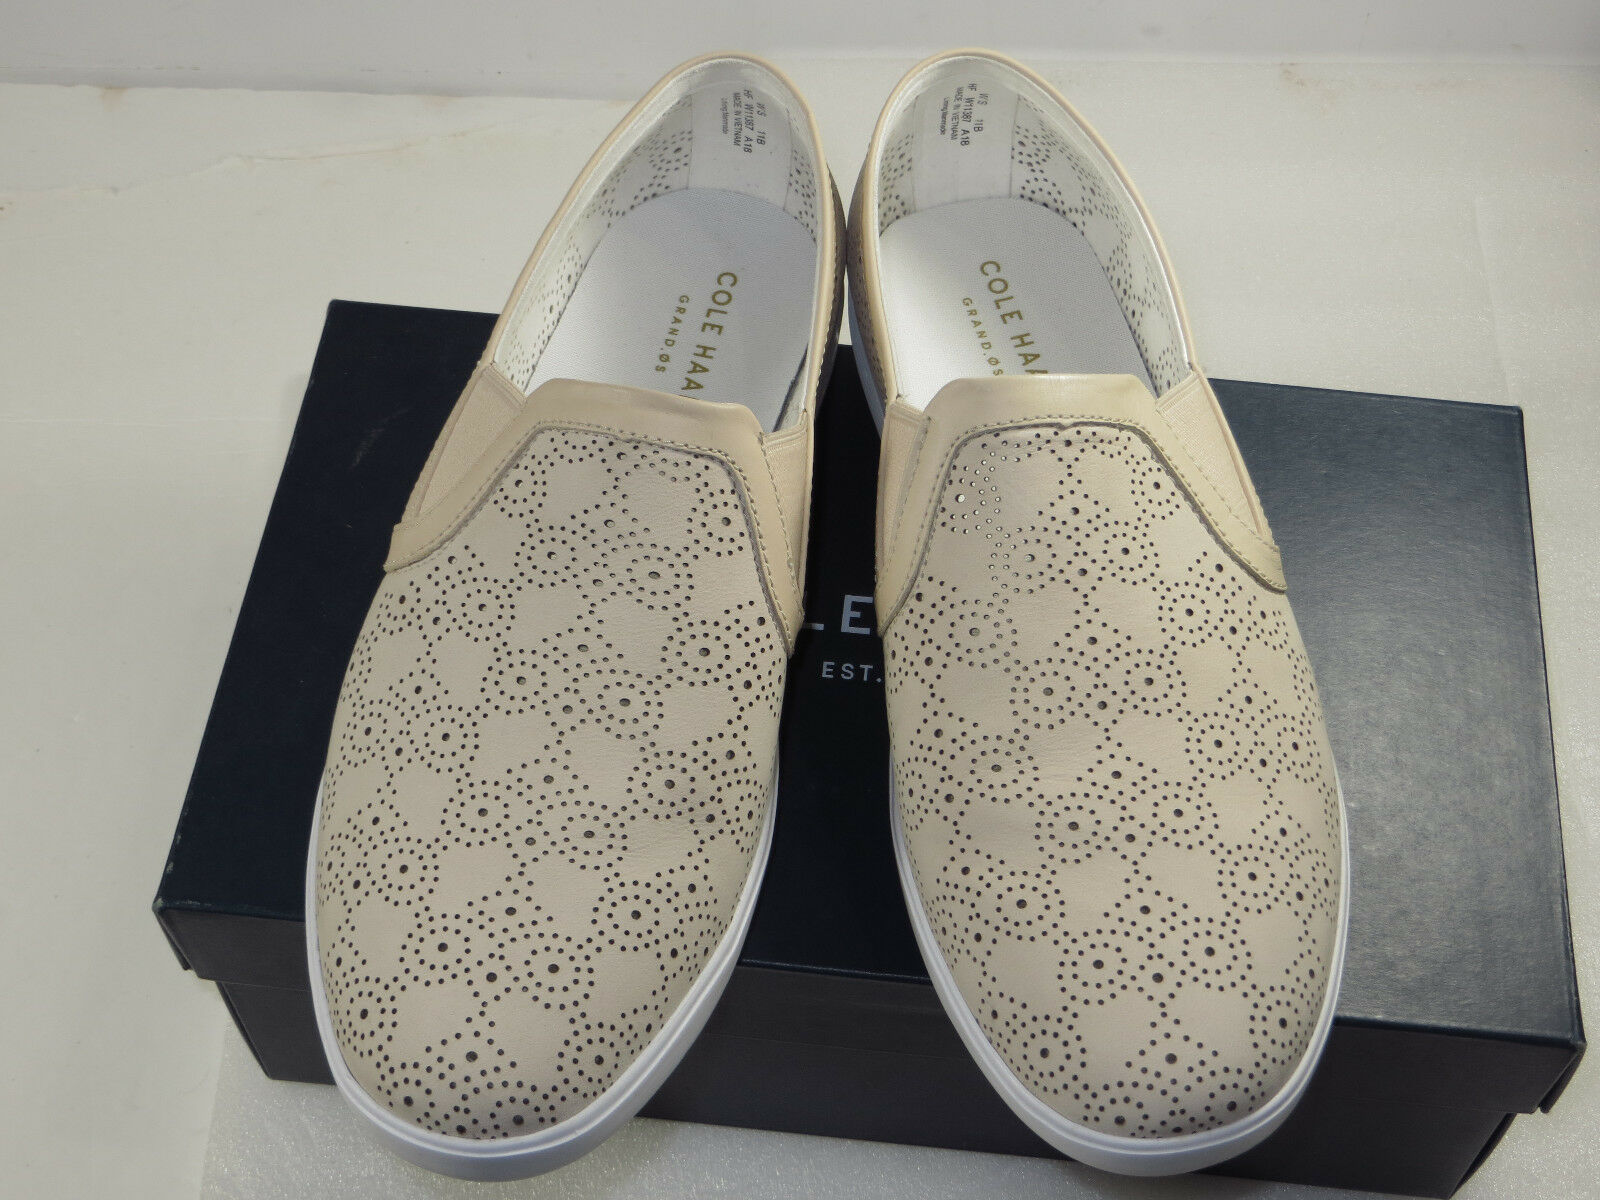 NIB COLE HAAN Womens grand.os,suede loafer light casual,dress comfy shoes11B  150